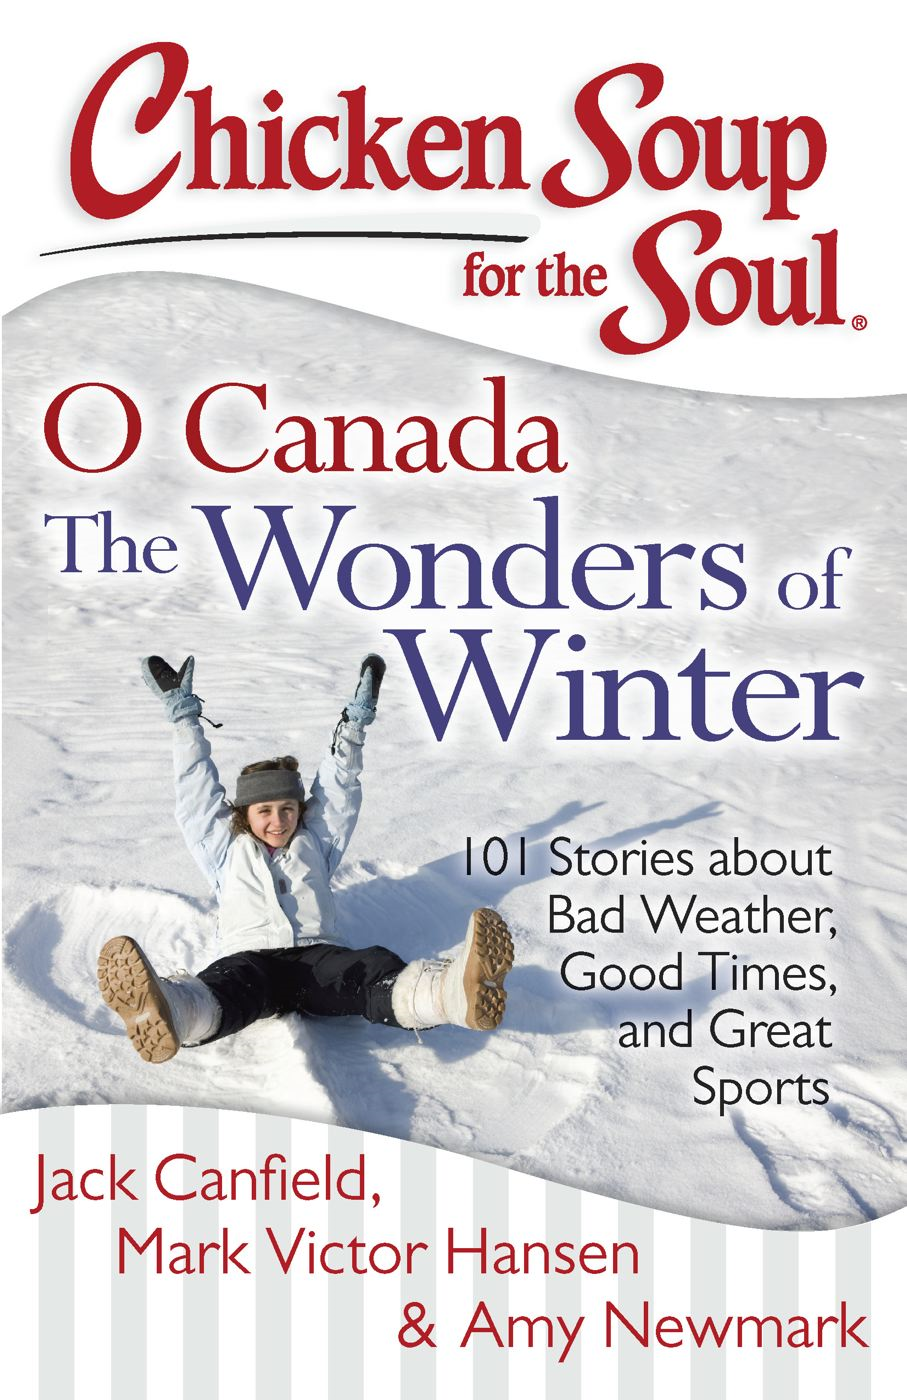 Chicken Soup for the Soul: O Canada The Wonders of Winter